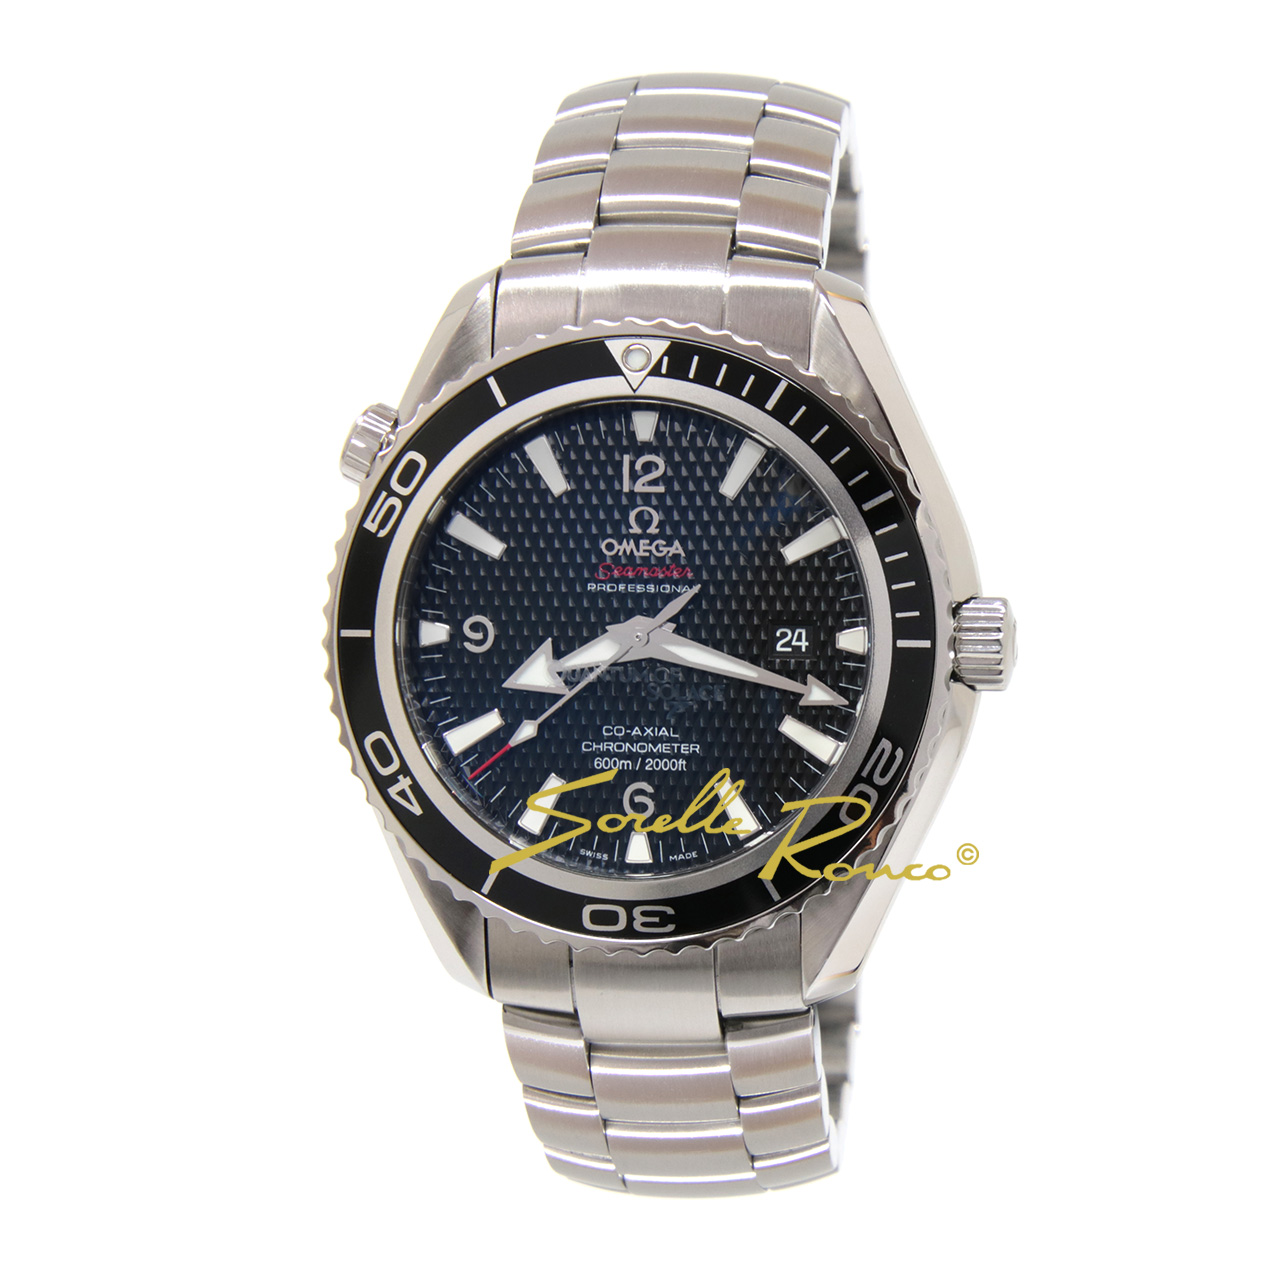 Seamaster Planet Ocean Quantum of Solace 007 Limited Edition